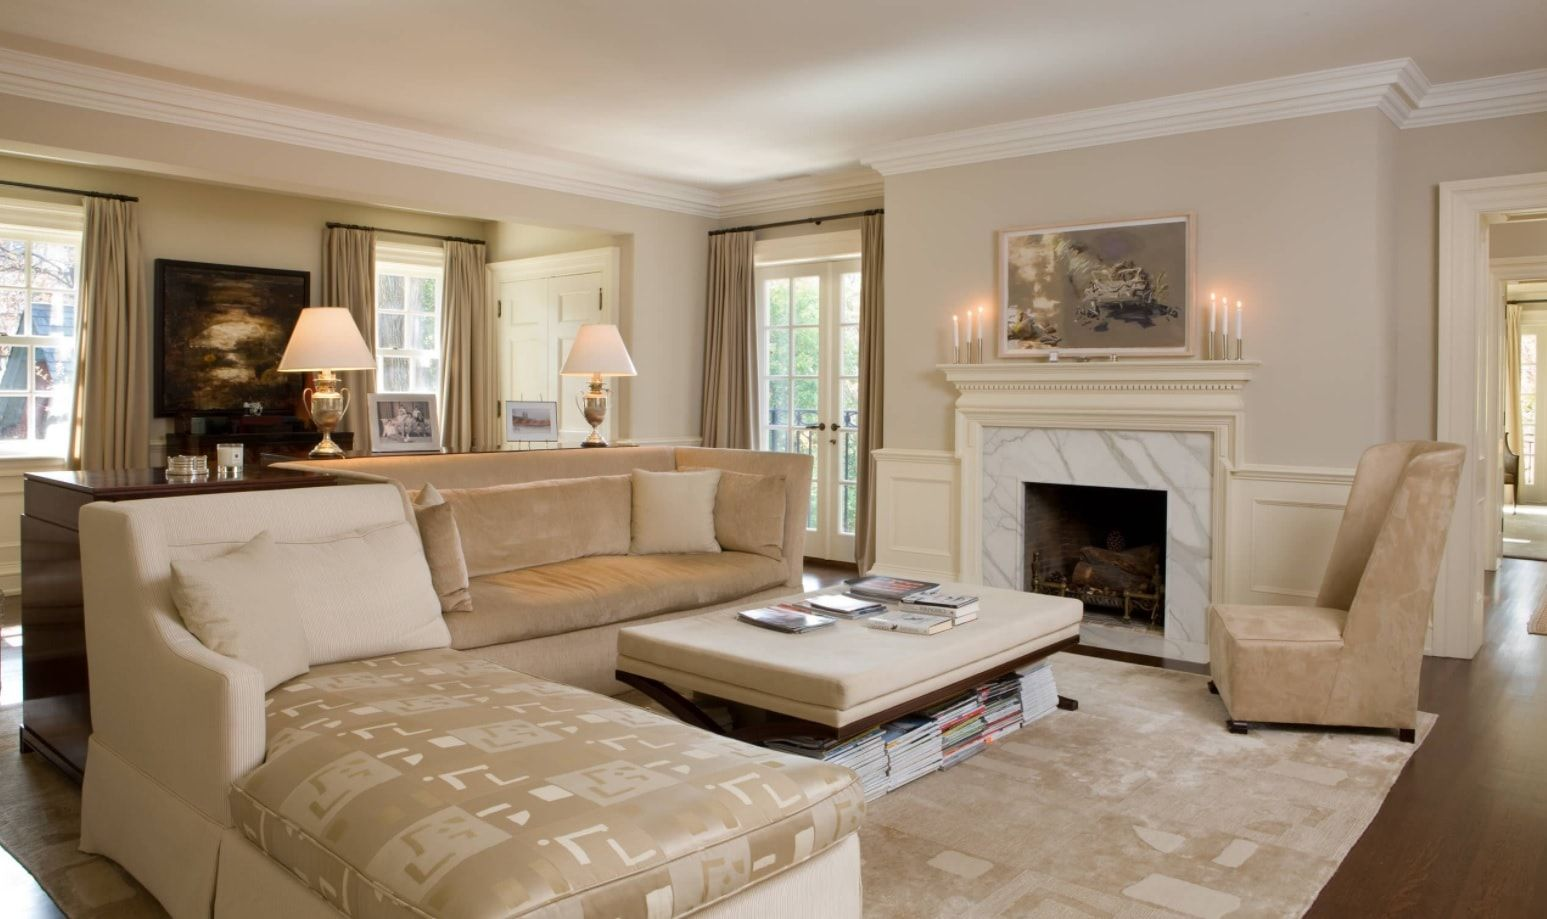 Classic styled gray room with ottoman and fireplace